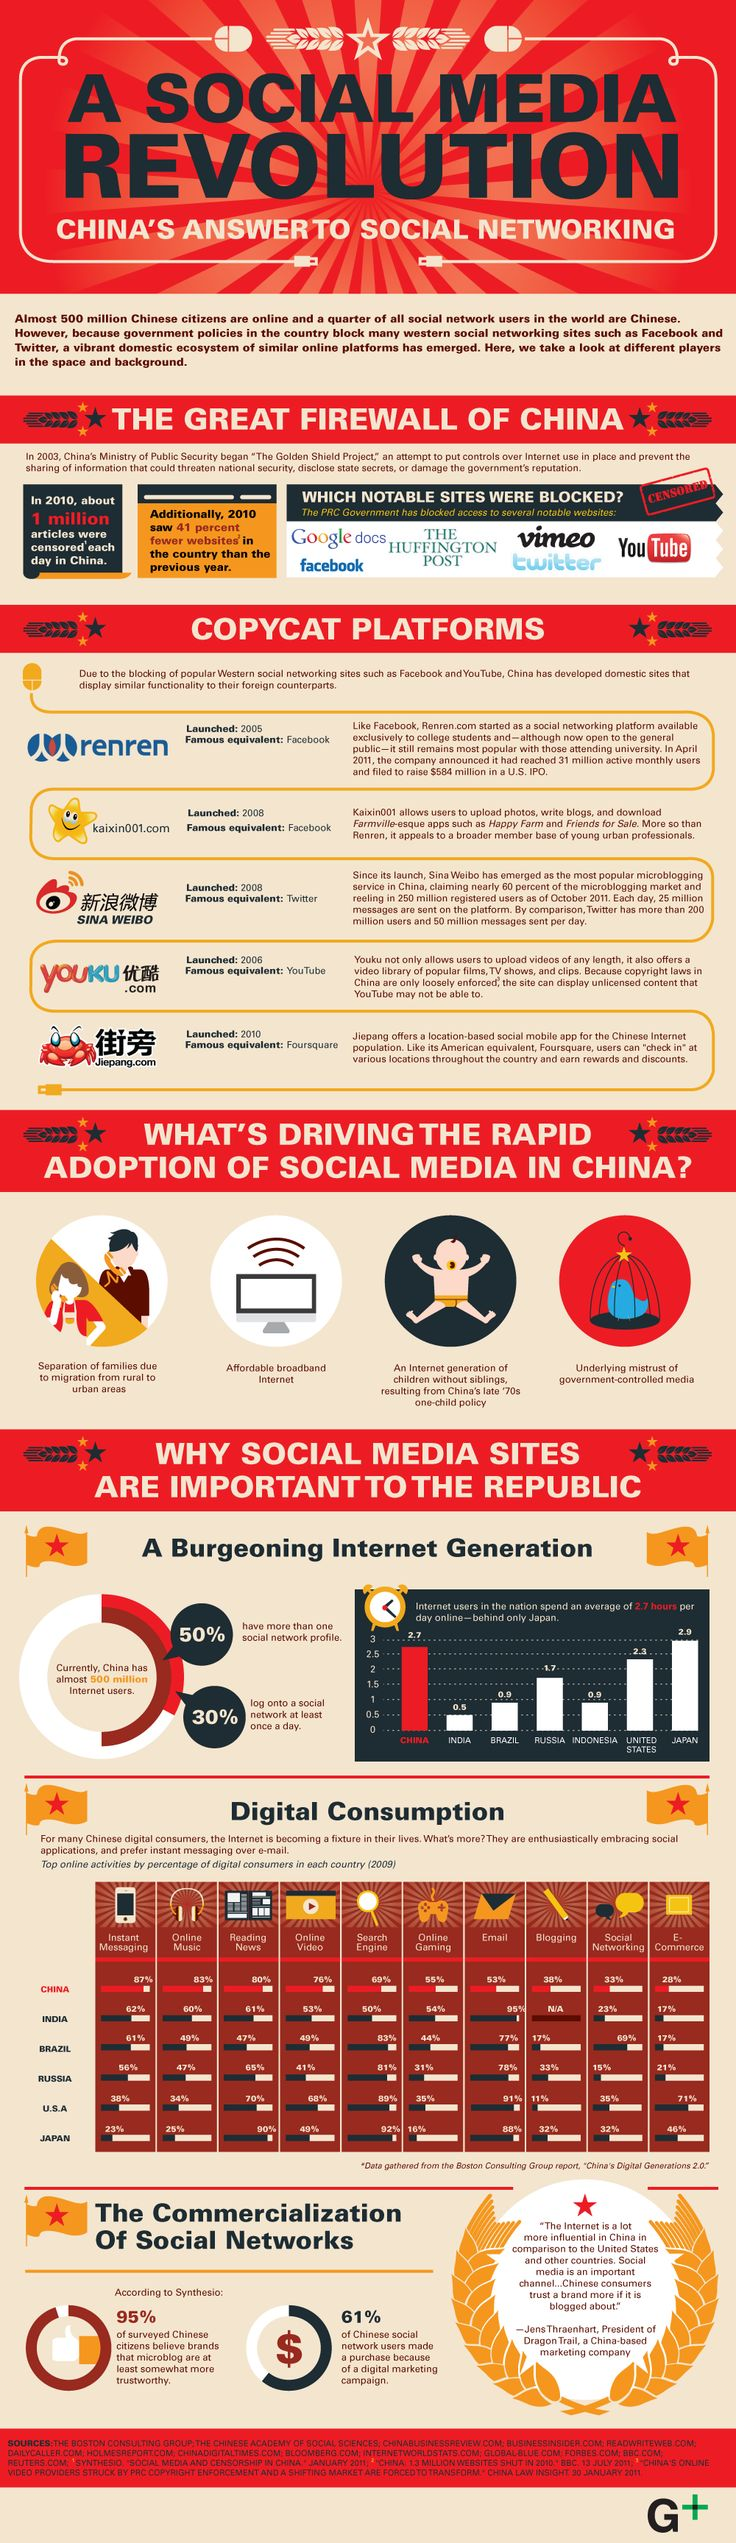 INFOGRAPHIC: A Social Media Revolution - China's Answer to Social Networking